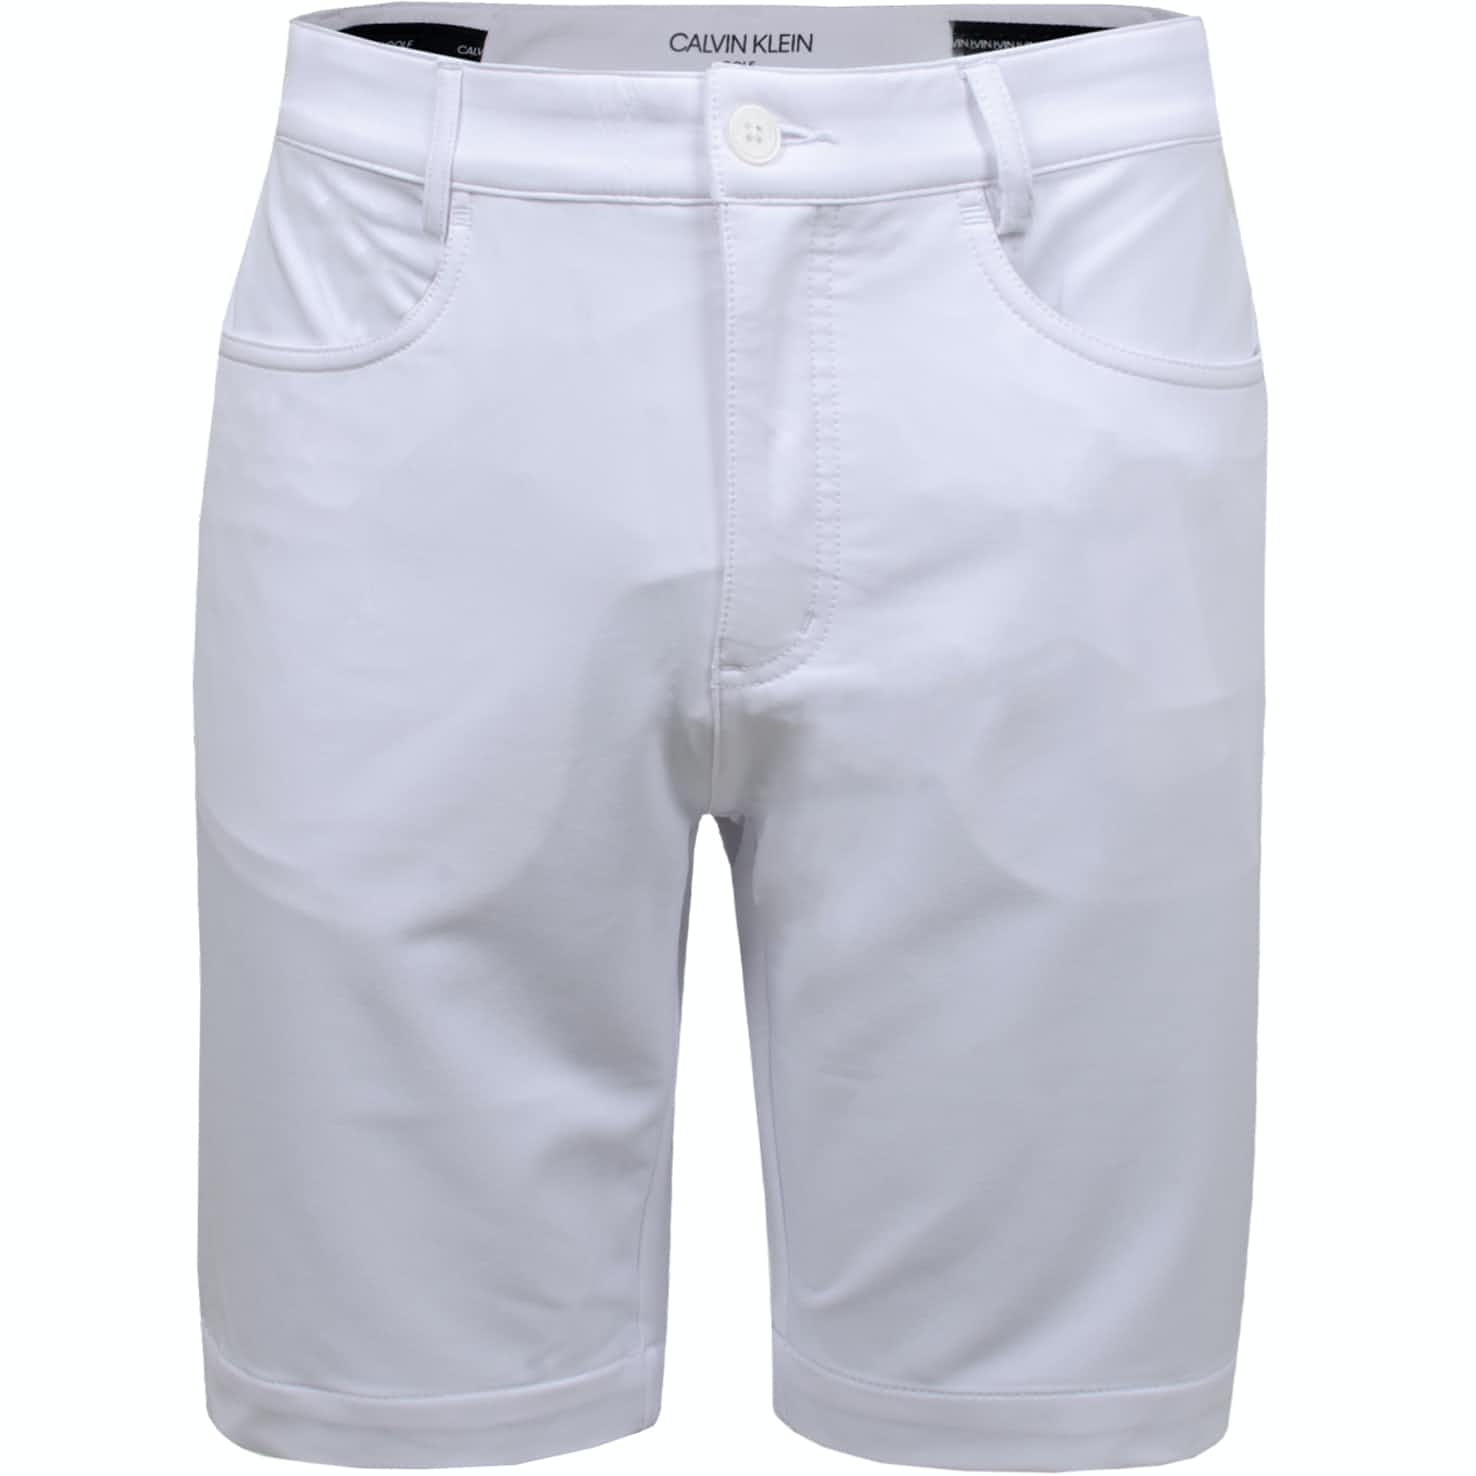 Genius Four-Way Stretch Shorts White - 2020